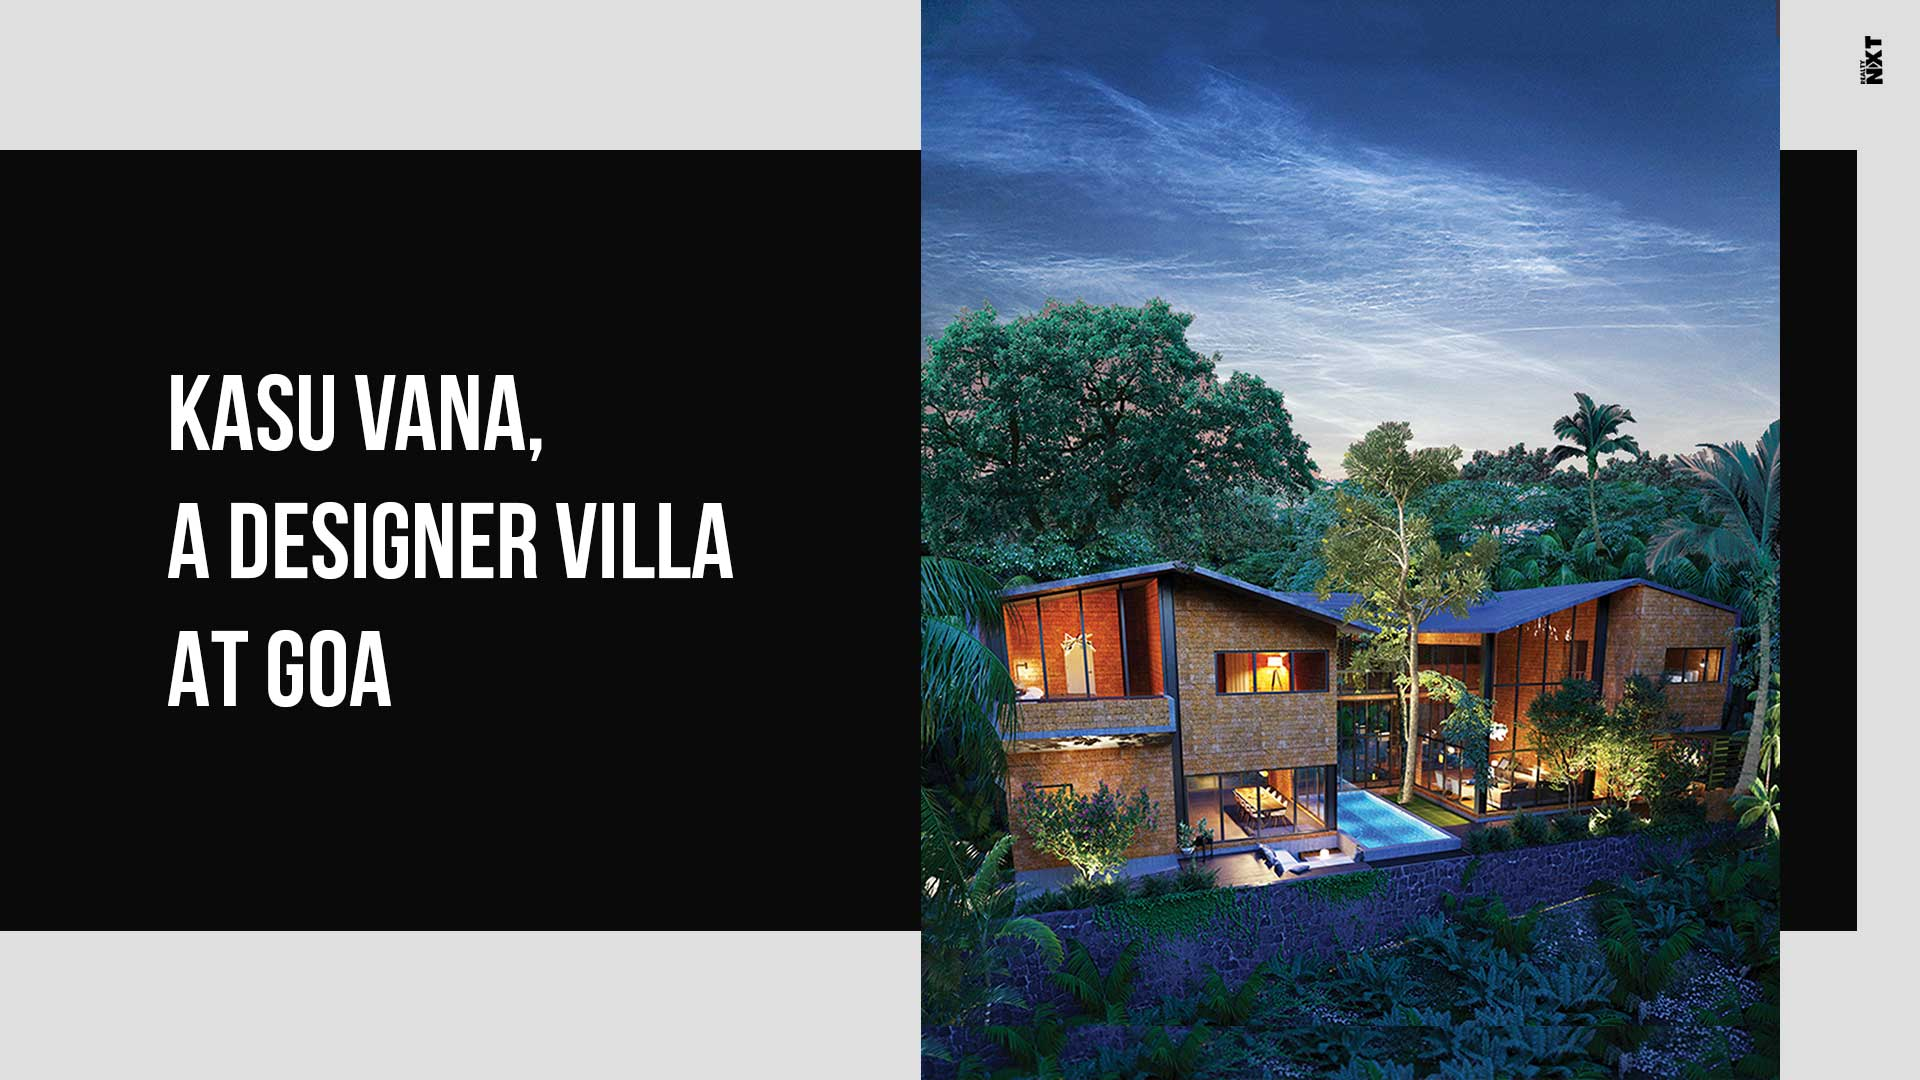 Kasu Assets Announces Kasu Vana, Limited-Edition Designer Villas